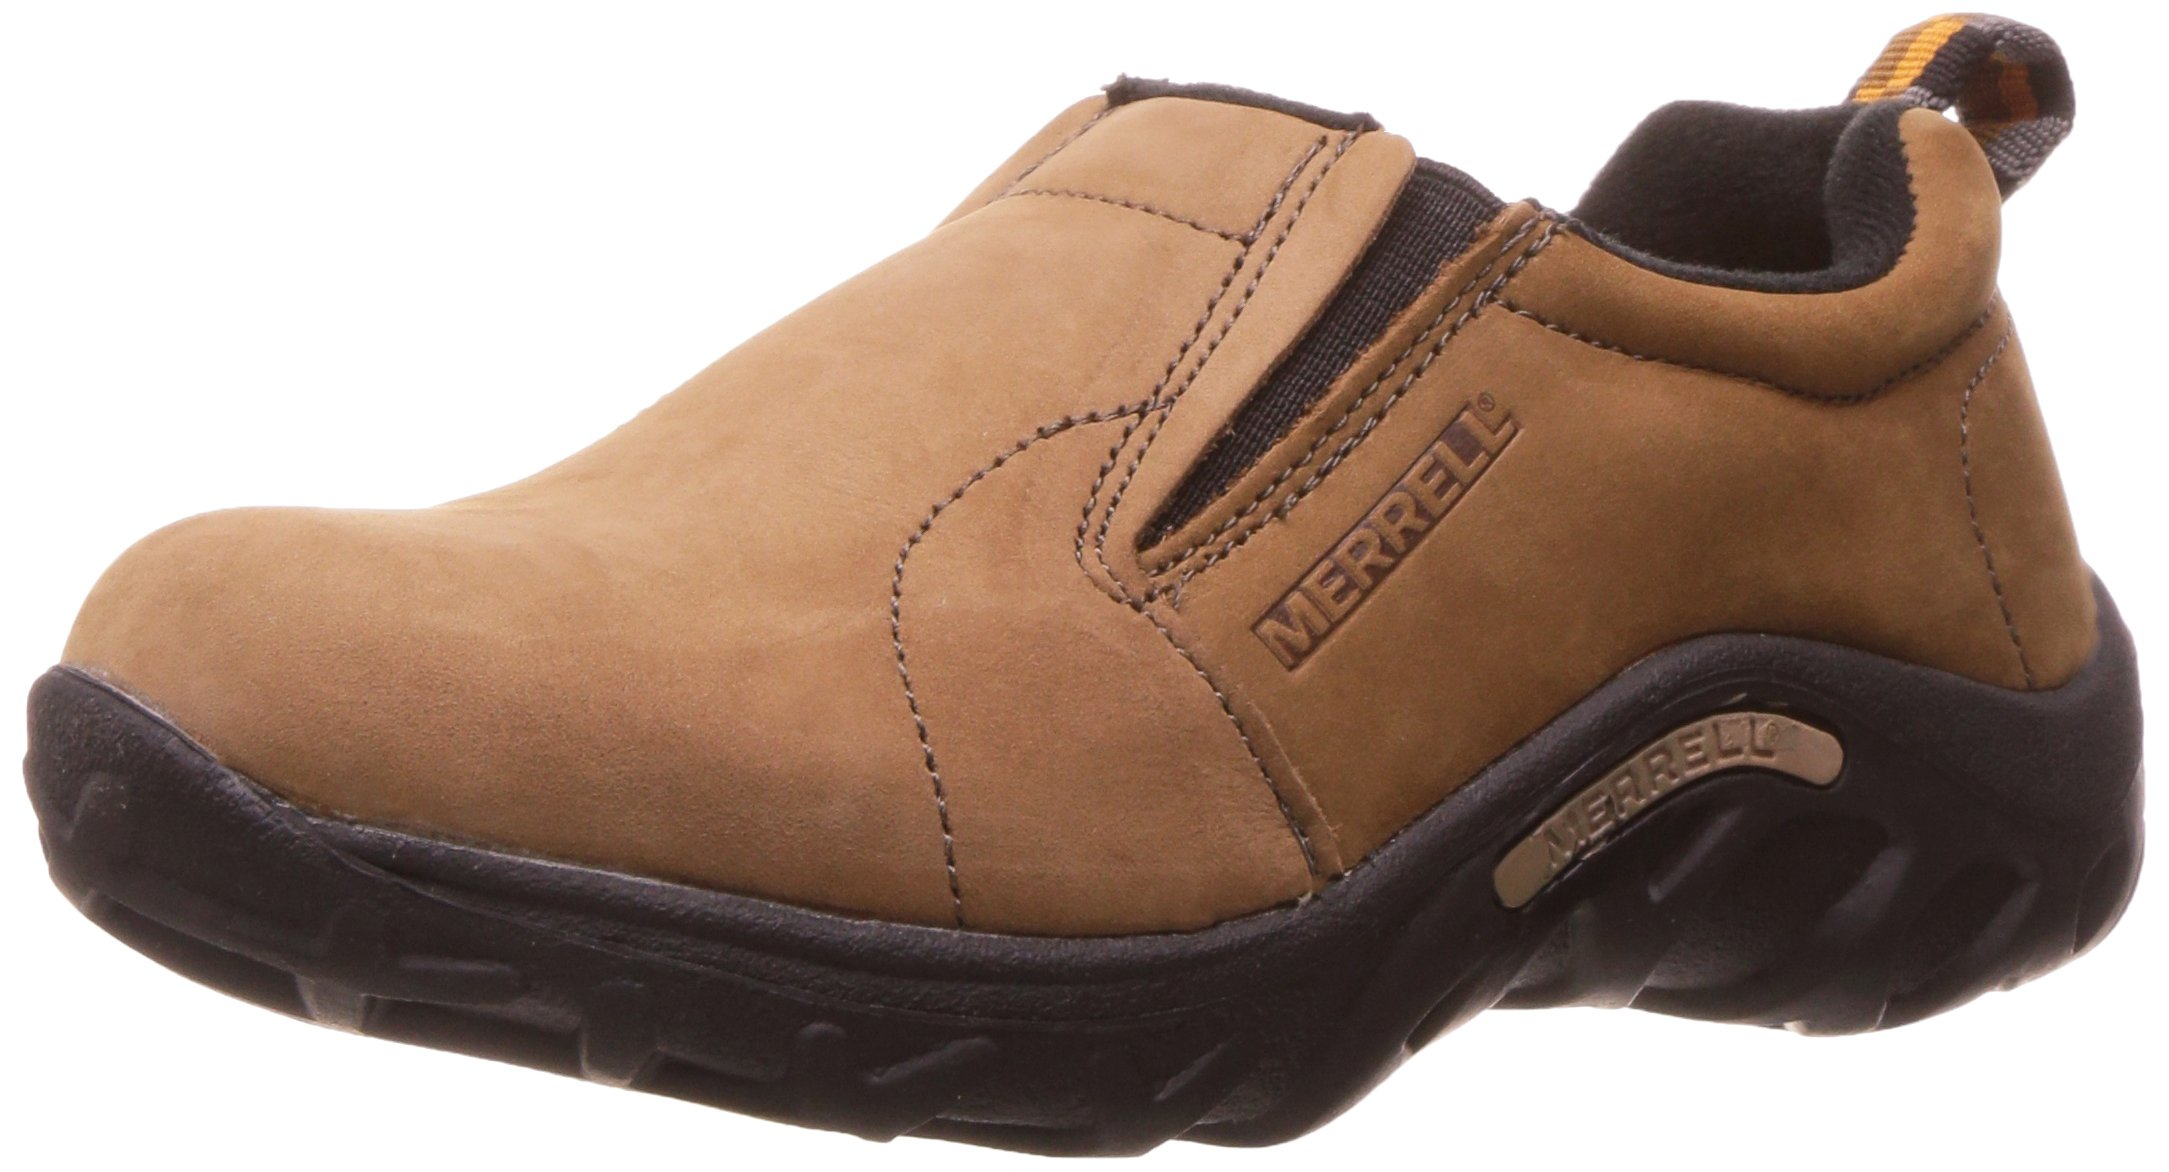 Merrell Jungle Moc Nubuck (Toddler/Little Kid/Big Kid),Brown,13 M US Little Kid